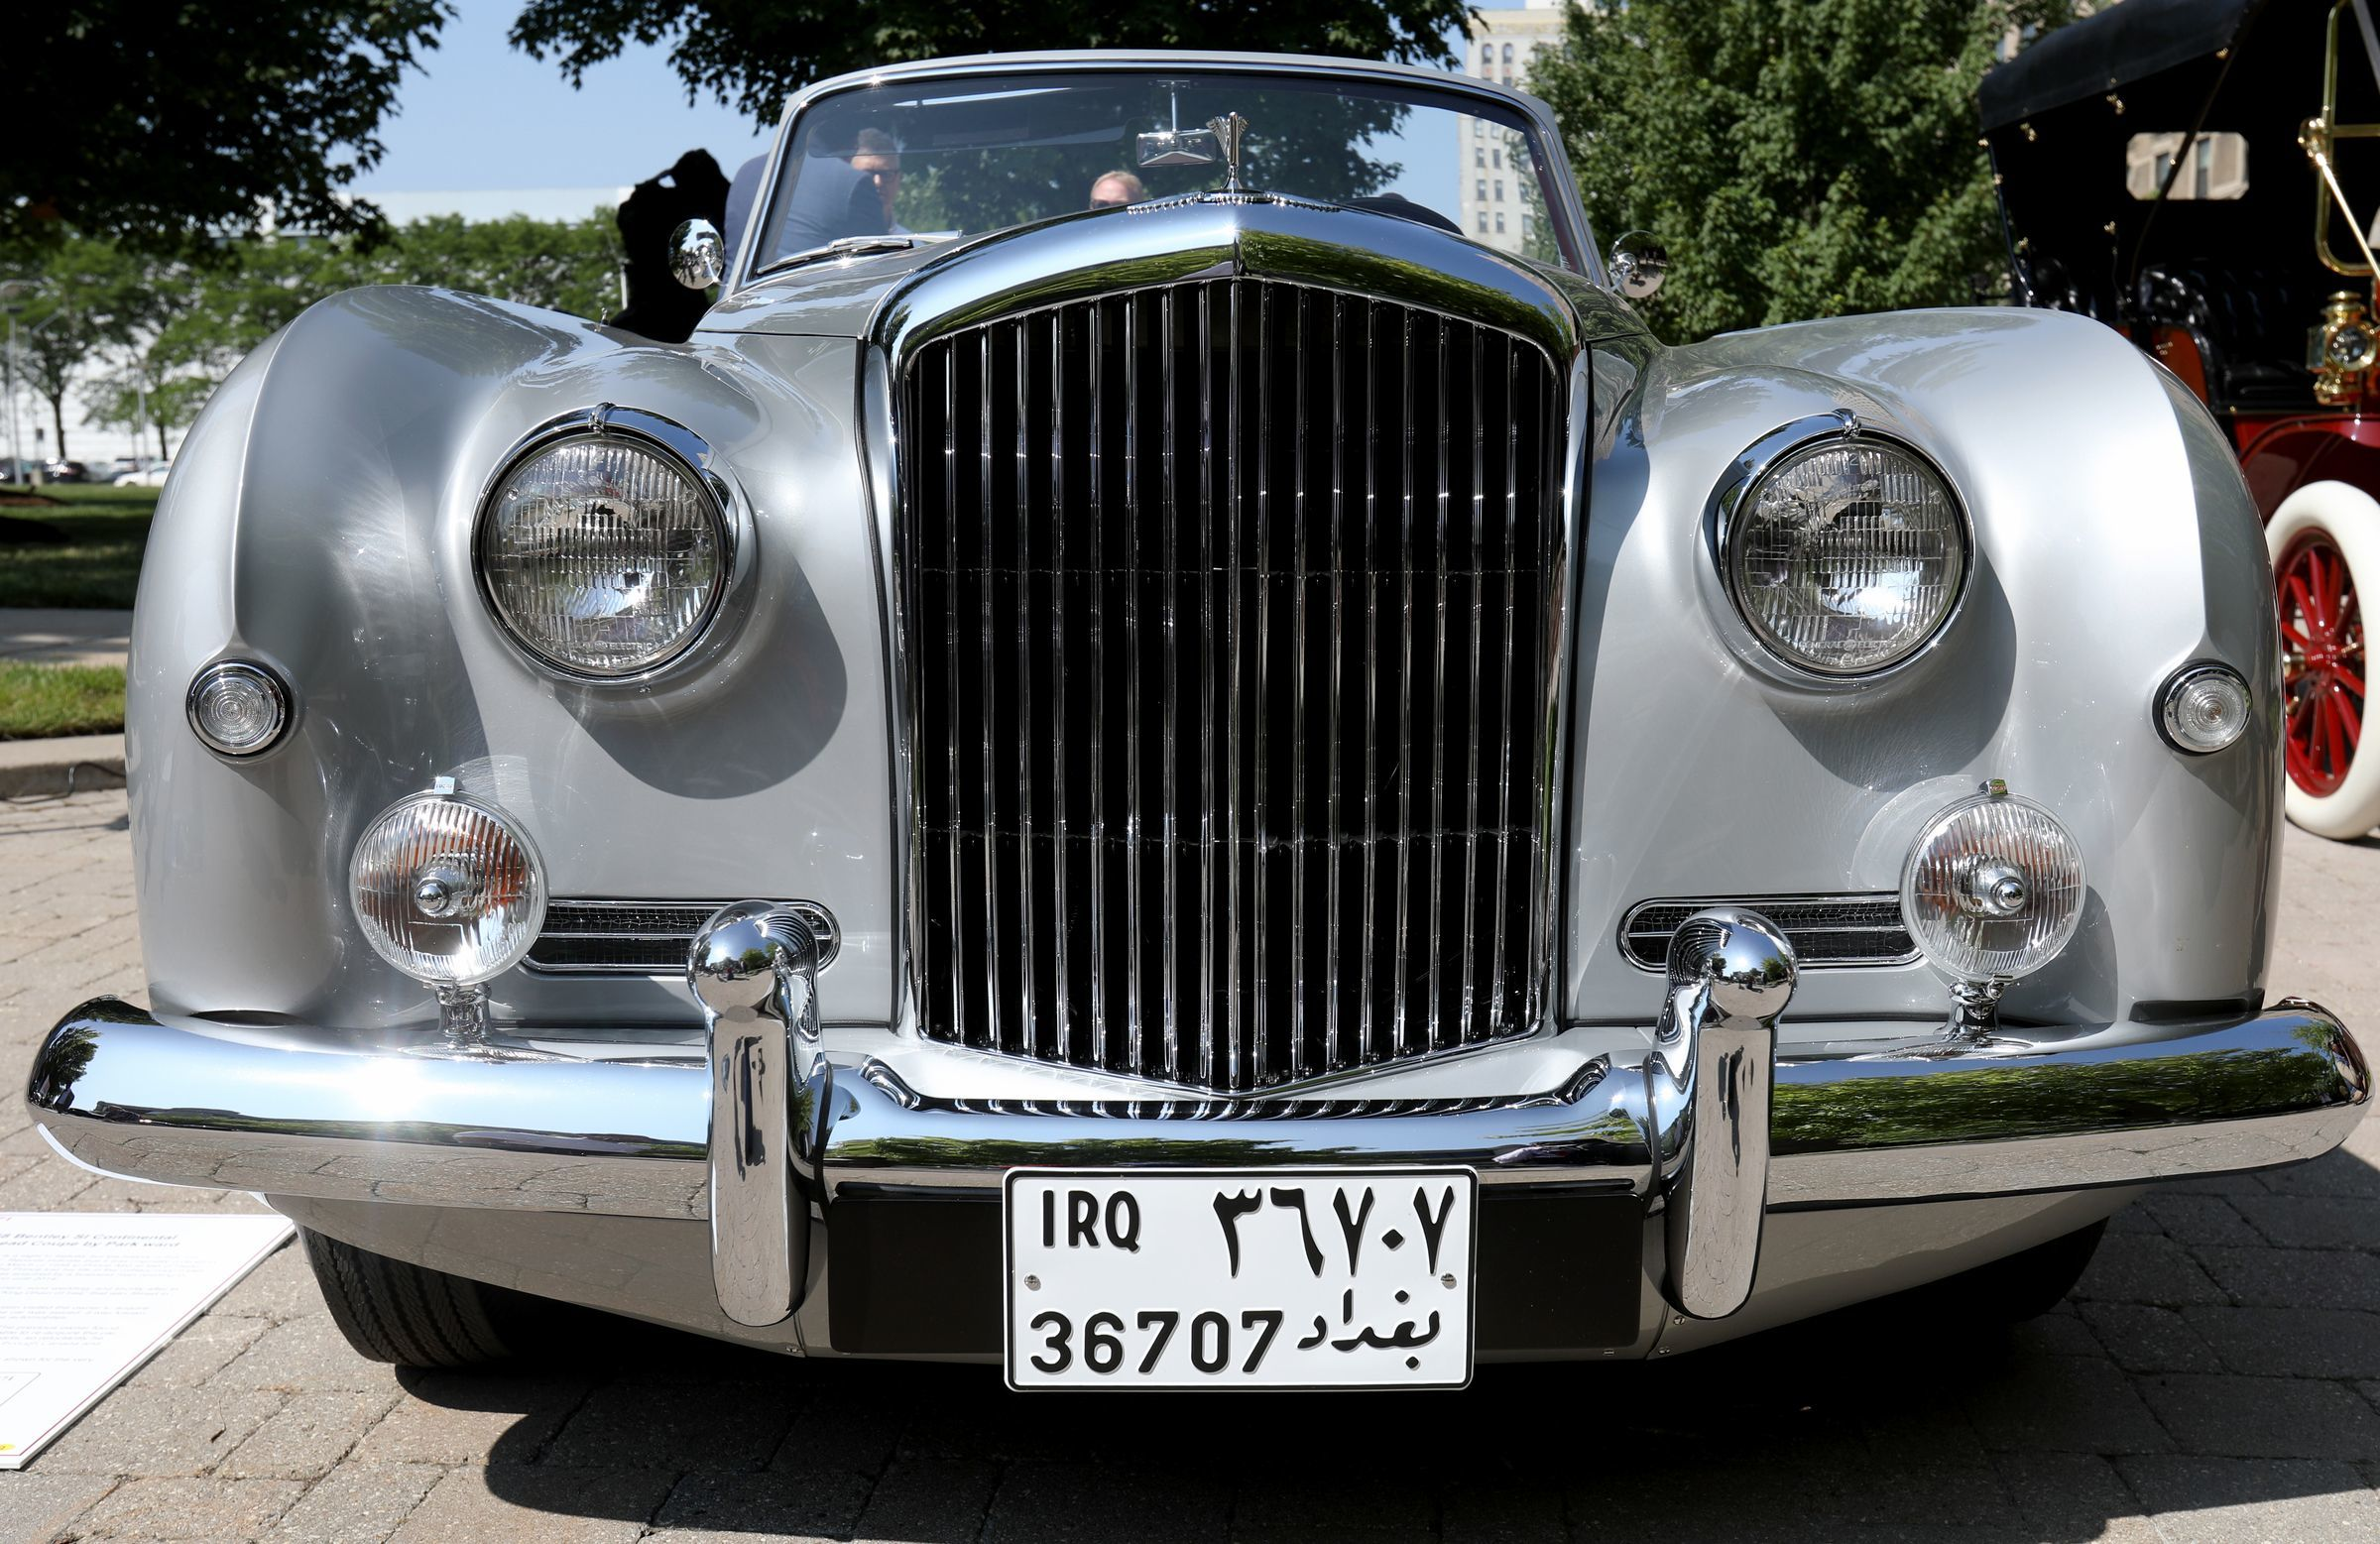 A 1958 Bentley SI Continental once owned by Saddam Hussein was in town for last year's Concours d'Elegance.